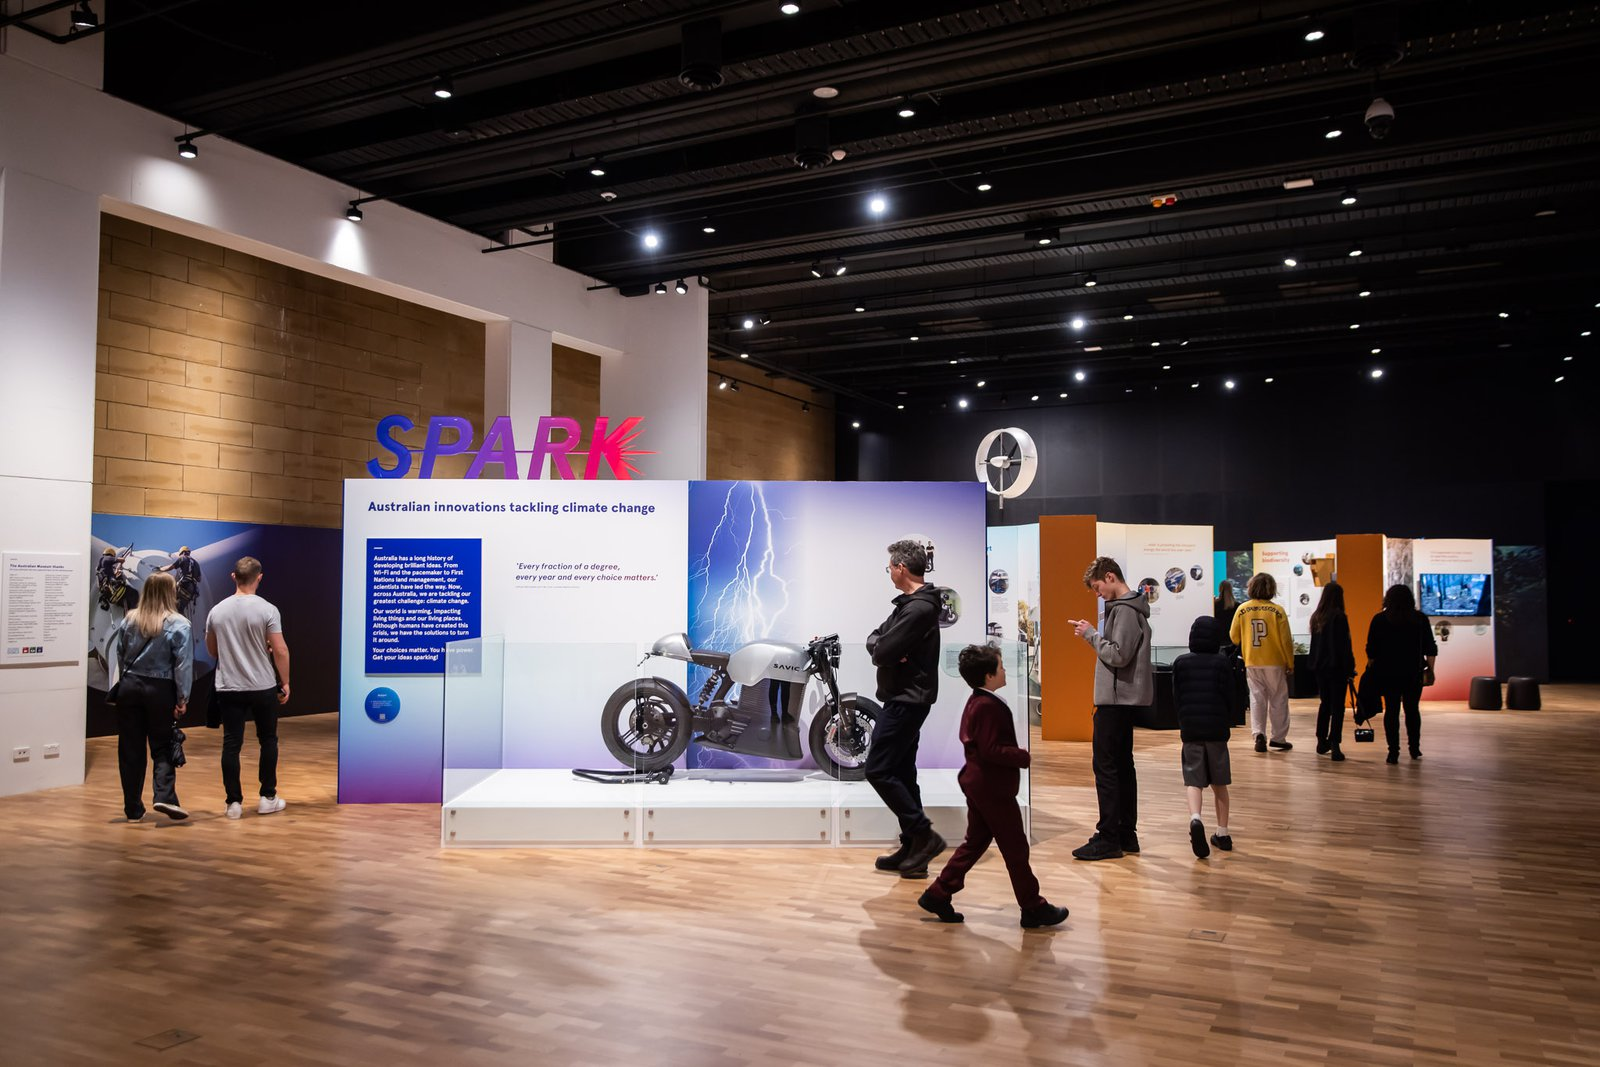 Visitors viewing the Spark exhibition